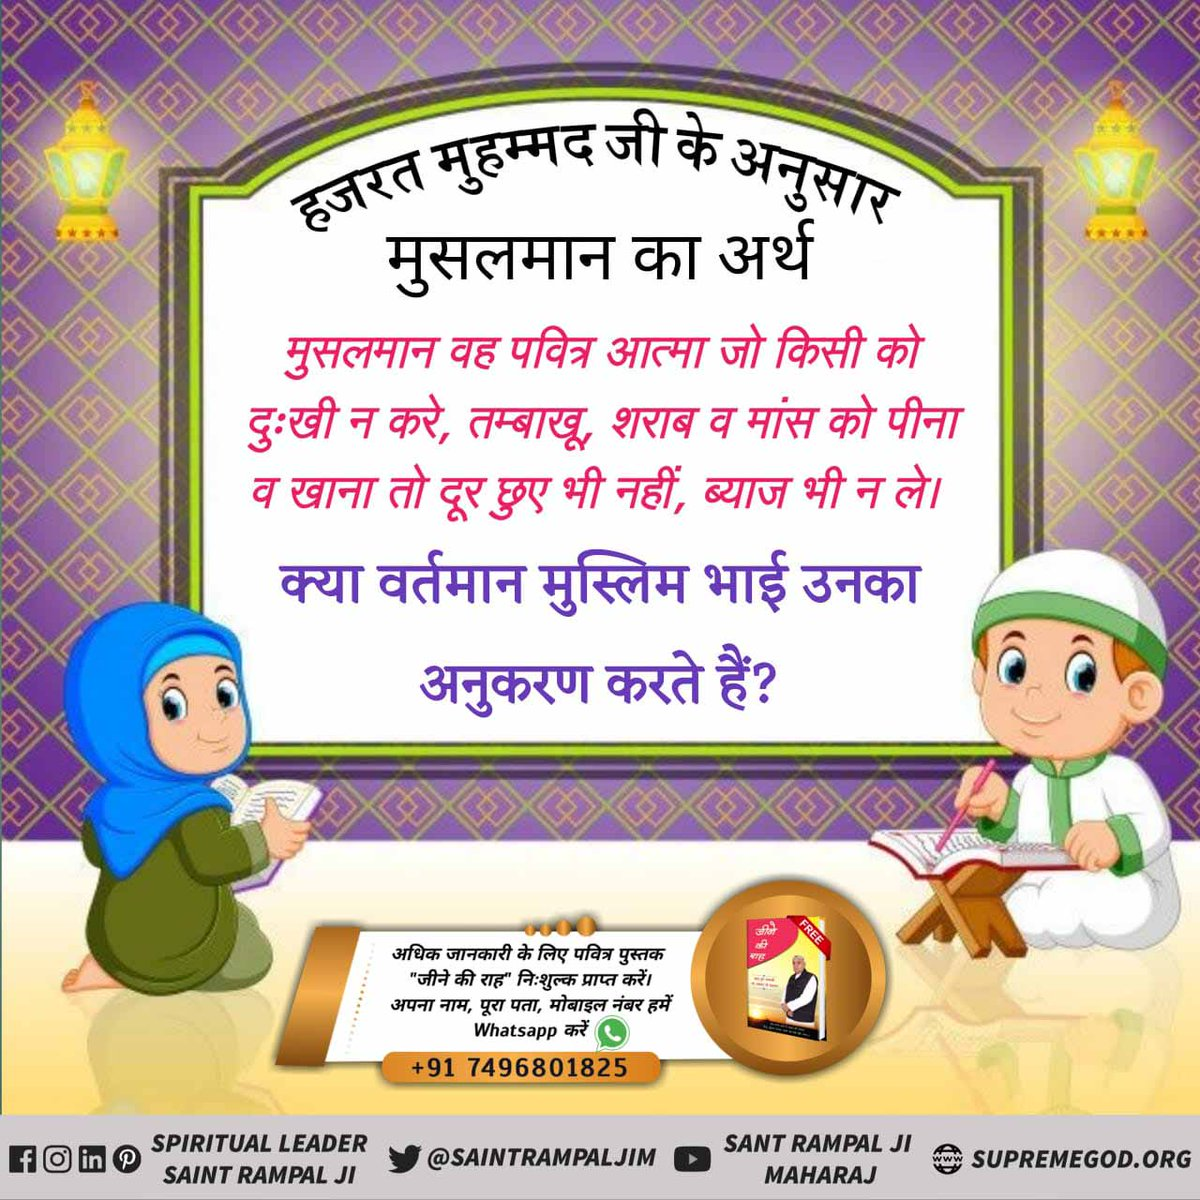 #FridayThoughts #LifeStory_Of_NabiMuhammad Meaning of Muslim according to Hazrat Muhammad ji.The Holy Spirit that does not make anyone grieving,drinking tobacco,alcohol and meat https://t.co/2afmi1xGn9